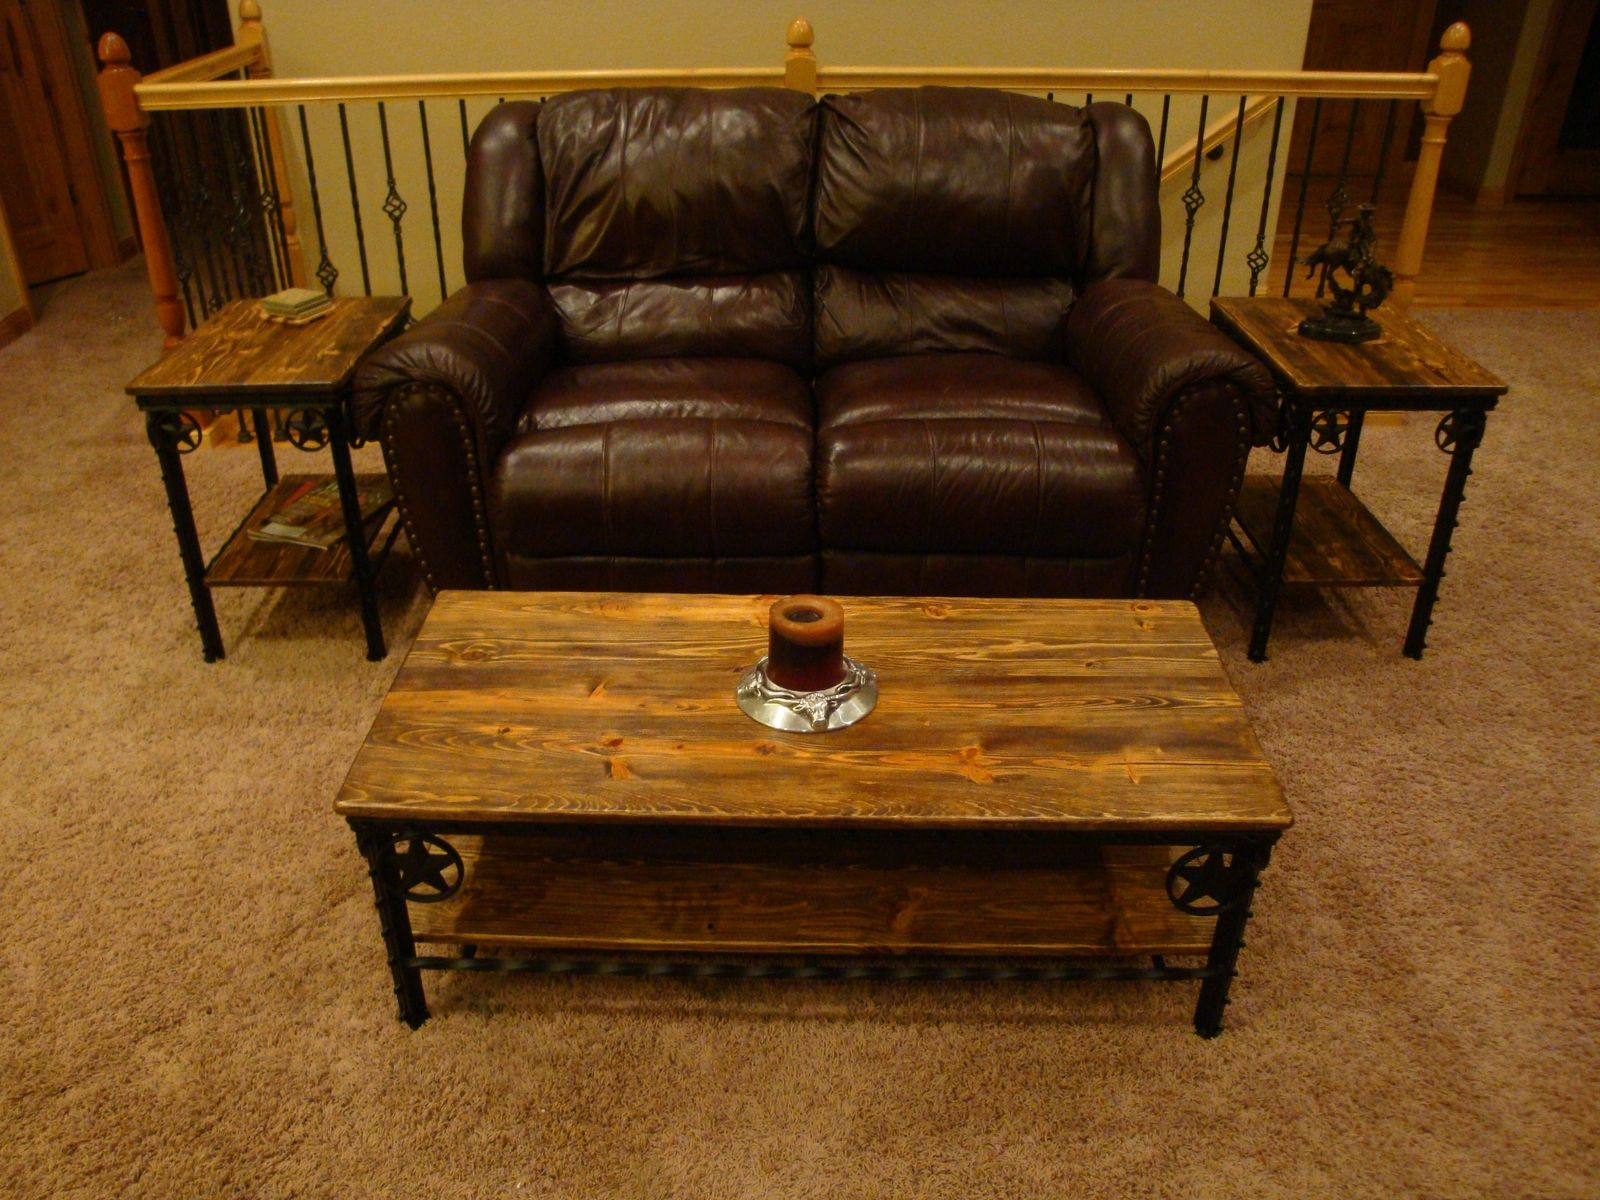 Handmade Western Coffee Table And End Tables By Willow Creek